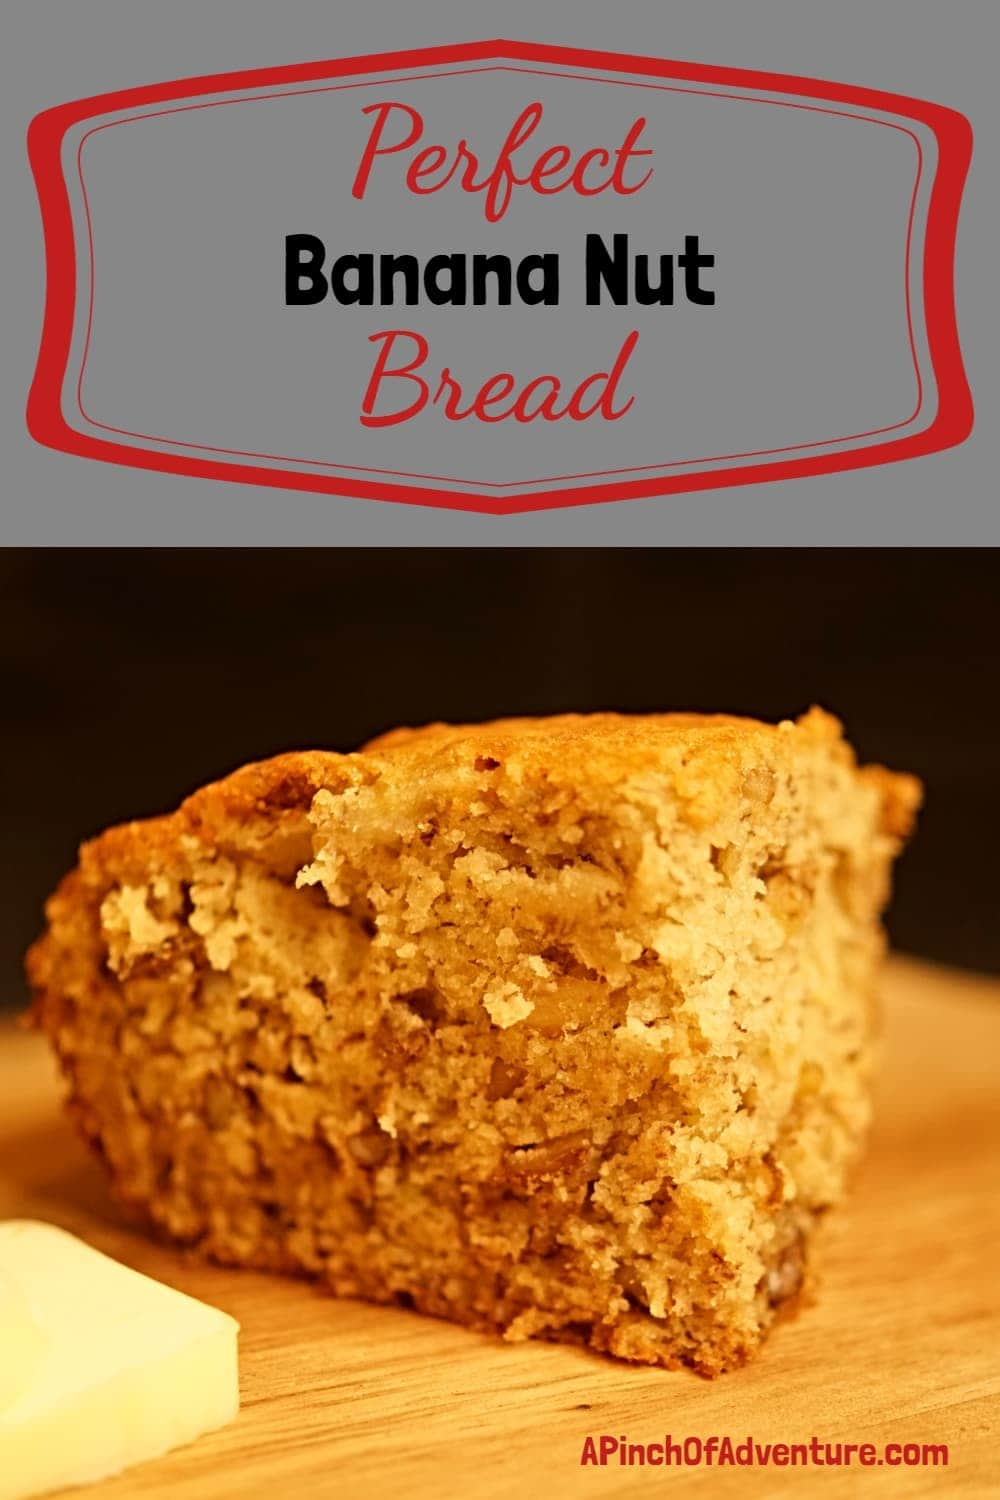 This perfect, easy banana bread is the best recipe to use those old bananas. This banana bread is perfectly moist and contains walnuts. You could easily add chocolate chips or different nuts or it can be made into muffins. This is a quick and easy recipe for homemade banana bread. -APinchOfAdventure